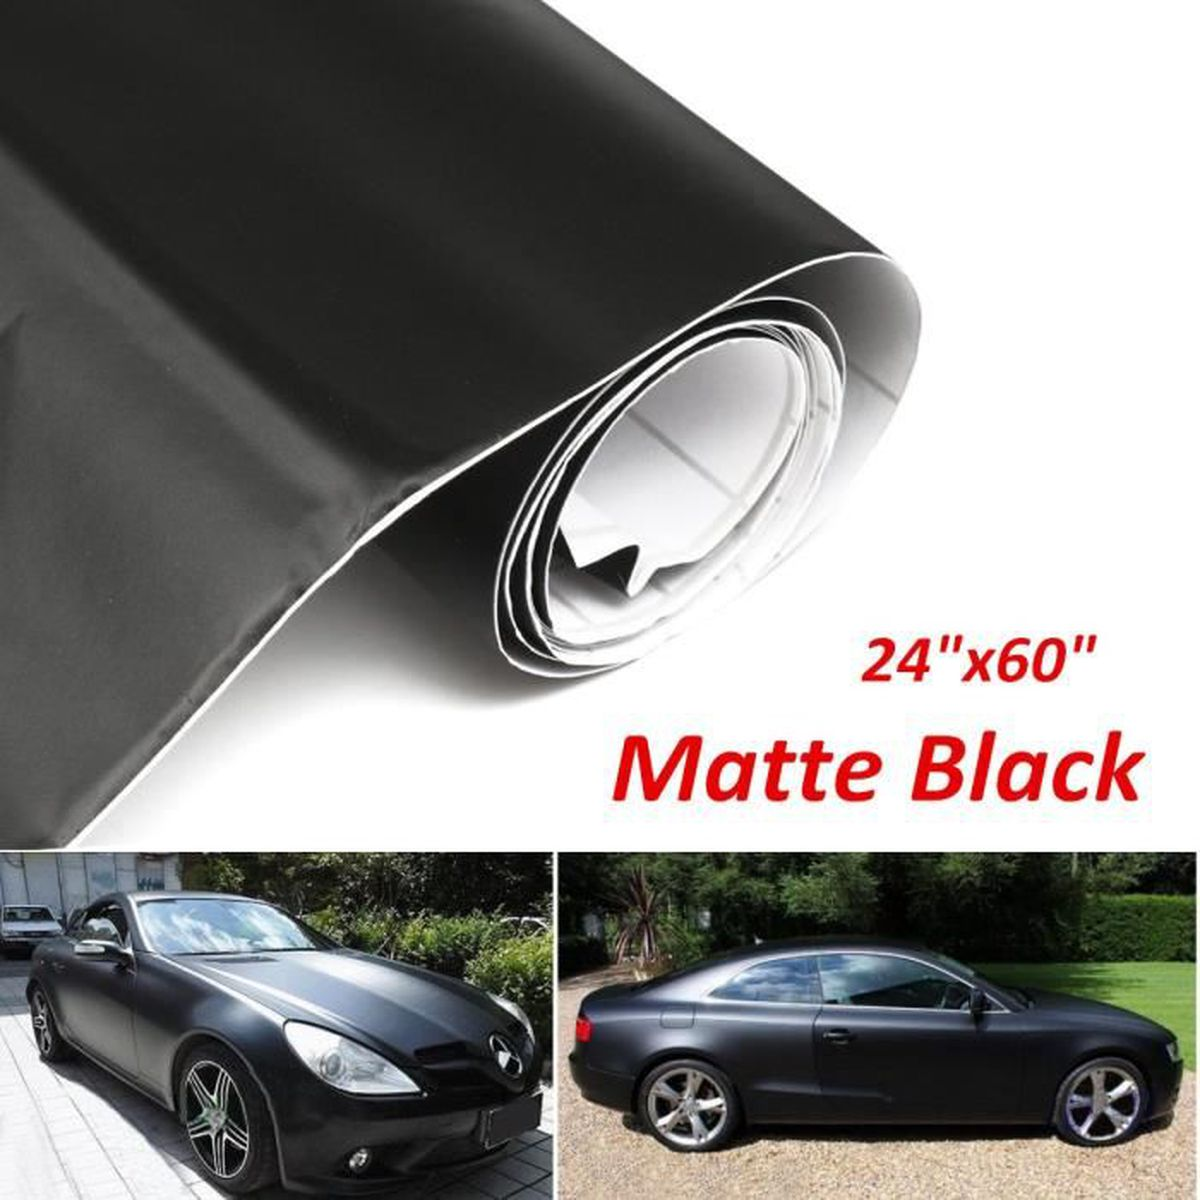 film autocollant sticker vinyle adhesif noir matte 60x150cm pour voiture auto achat vente. Black Bedroom Furniture Sets. Home Design Ideas